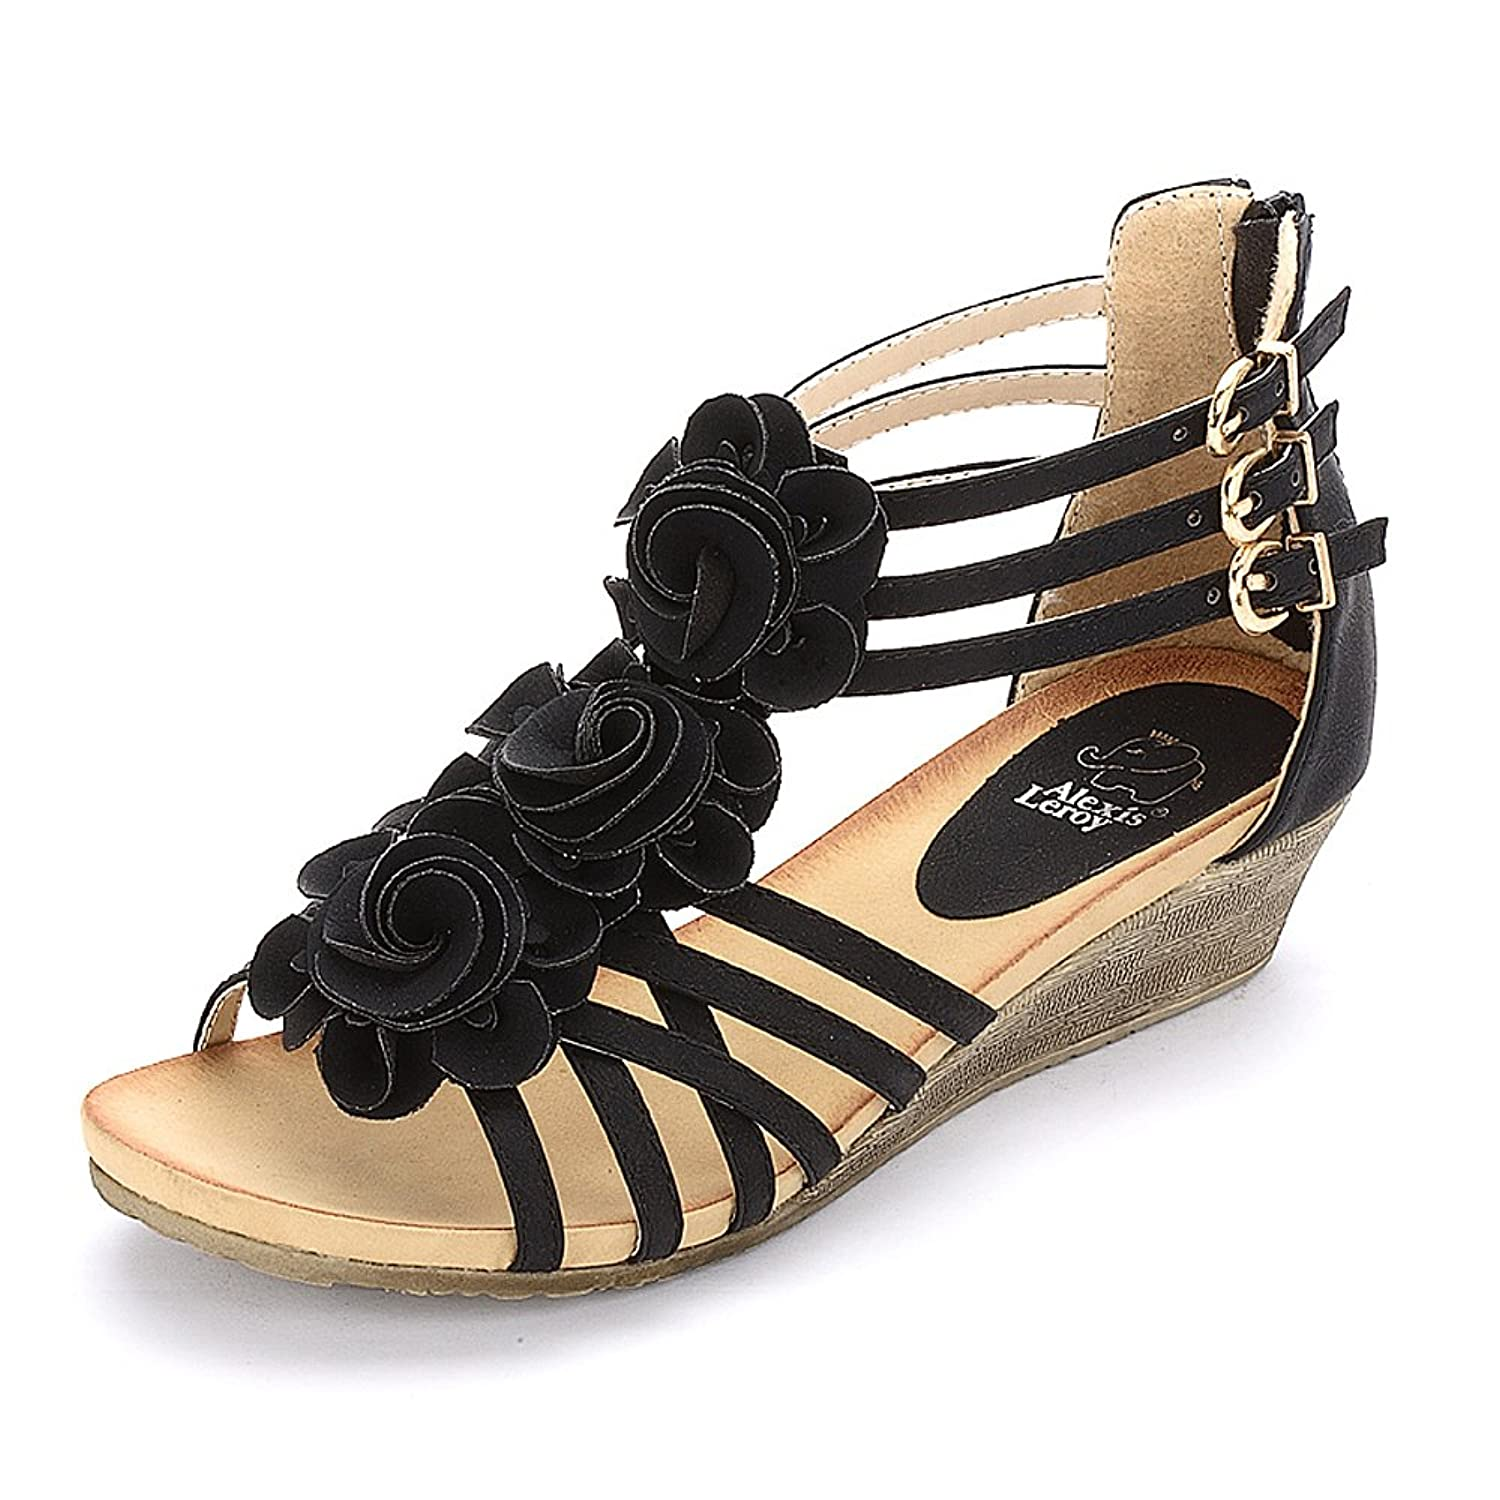 Alexis Leroy New Arrival Women Fashion Summer Wedge Heel T Straps Buckle Sandals by Alexis Leroy